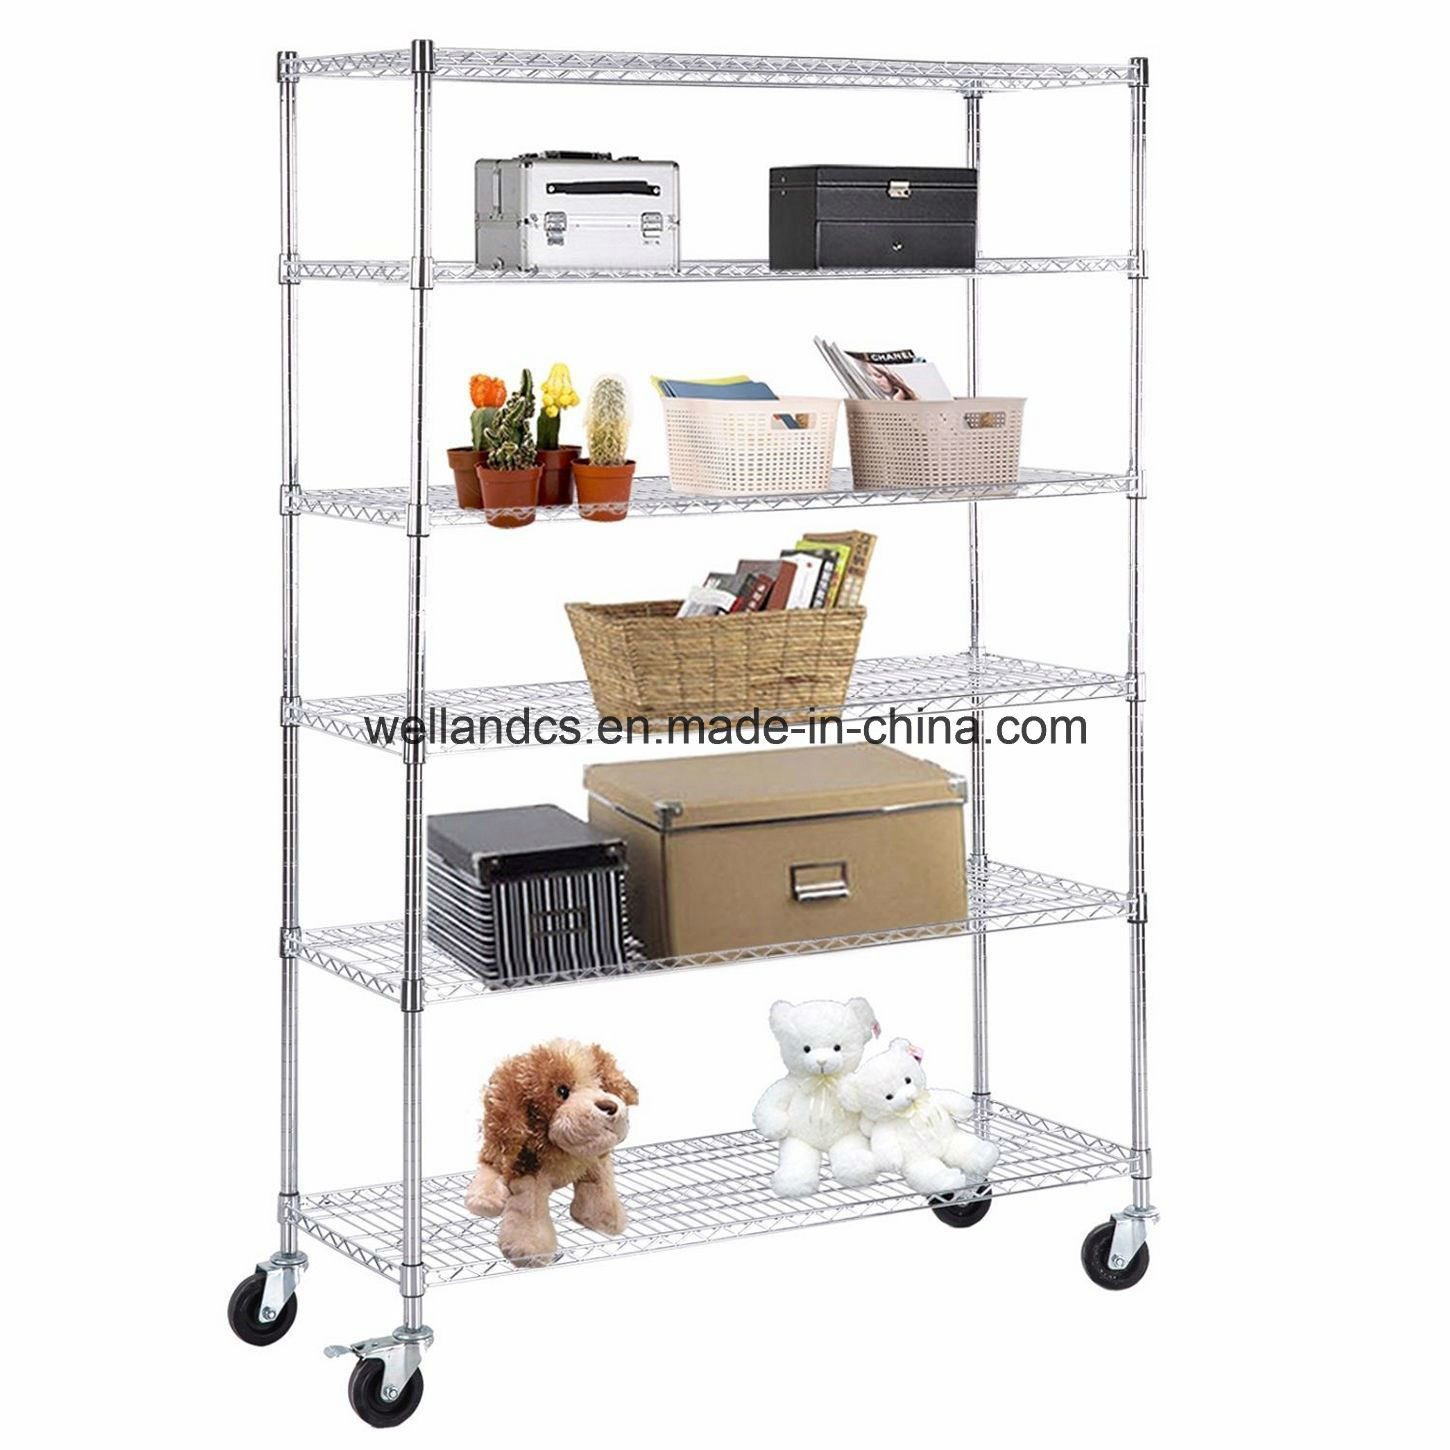 China NSF Portable Adjustable Metal Wire Storage Rack with Wheels ...